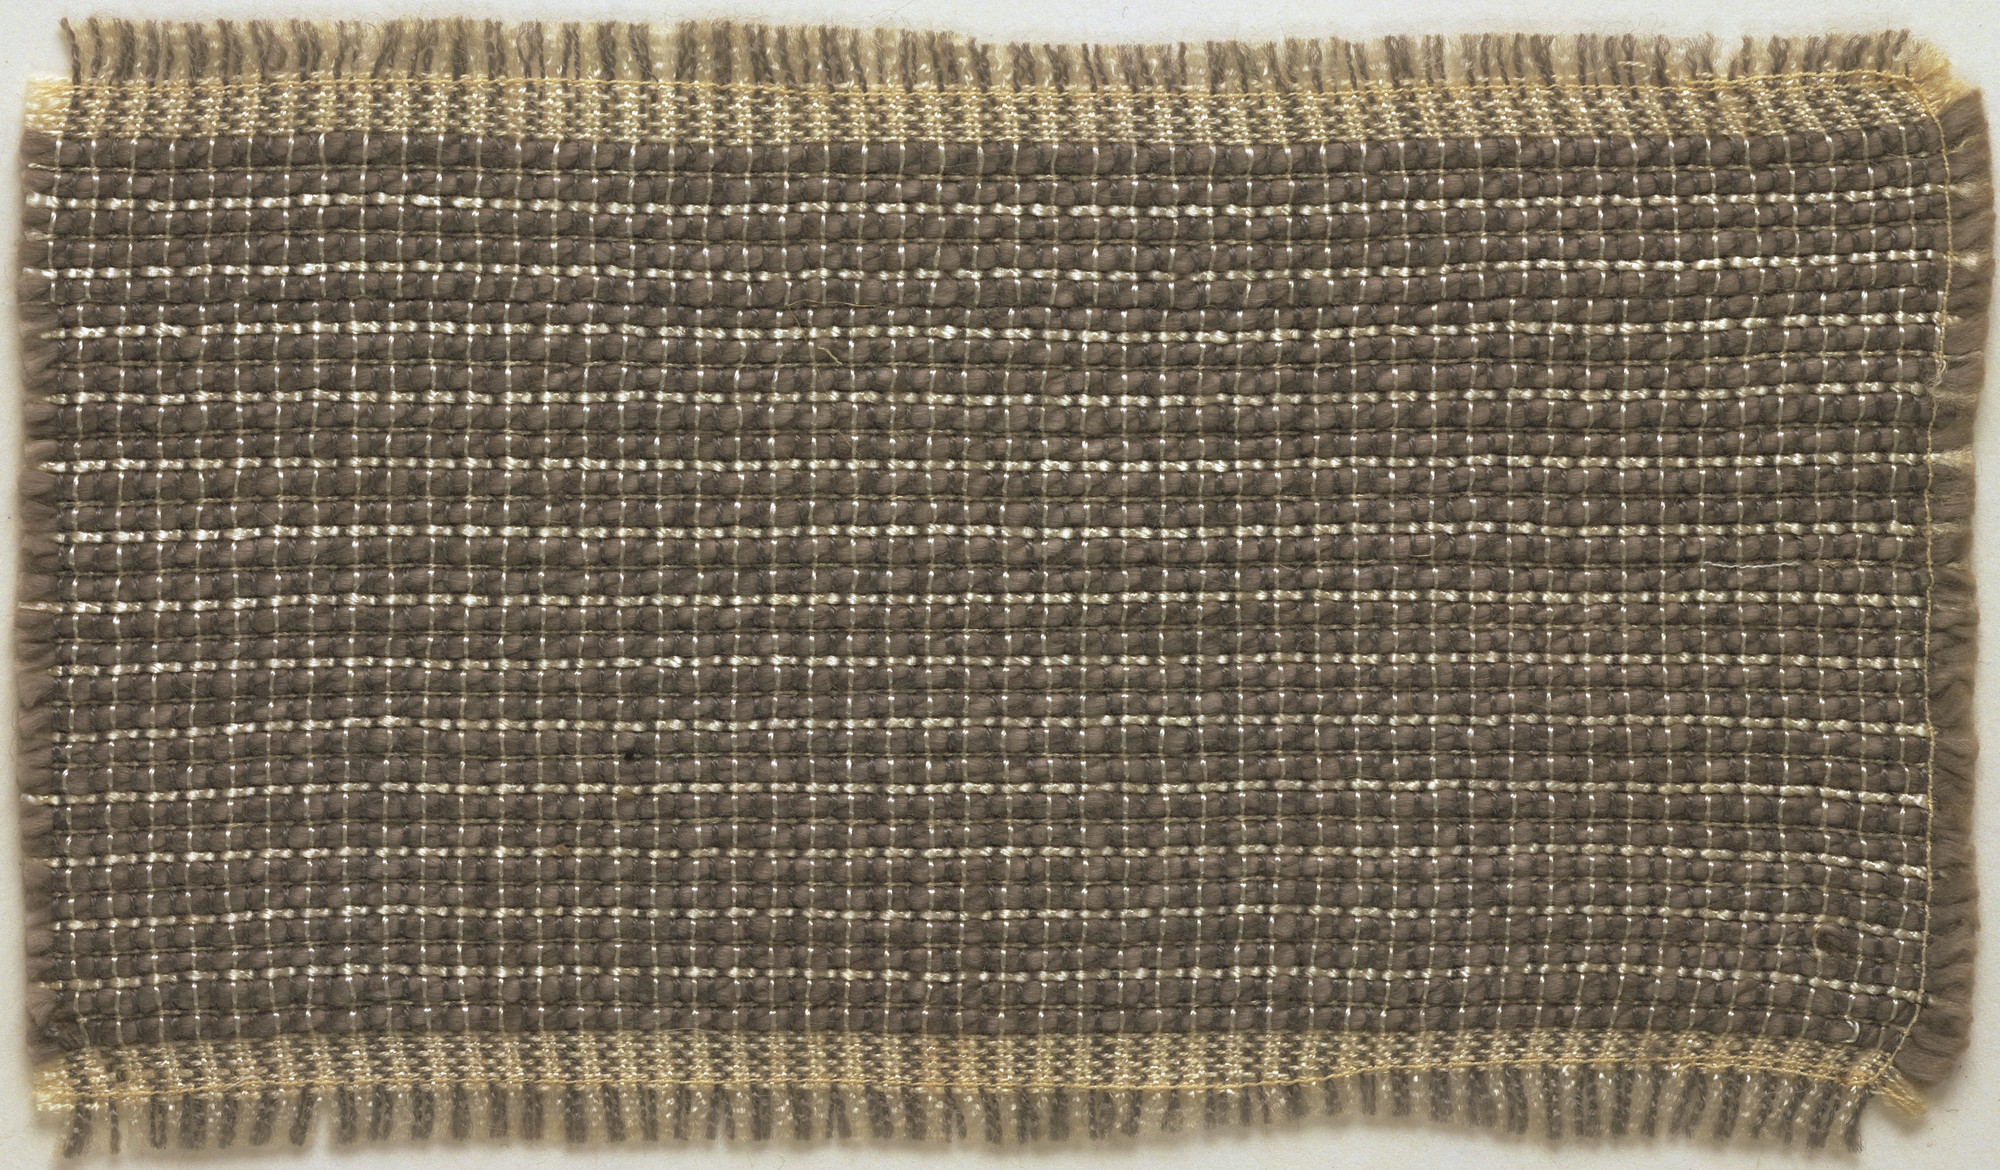 Anni Albers. Upholstery material. 1929